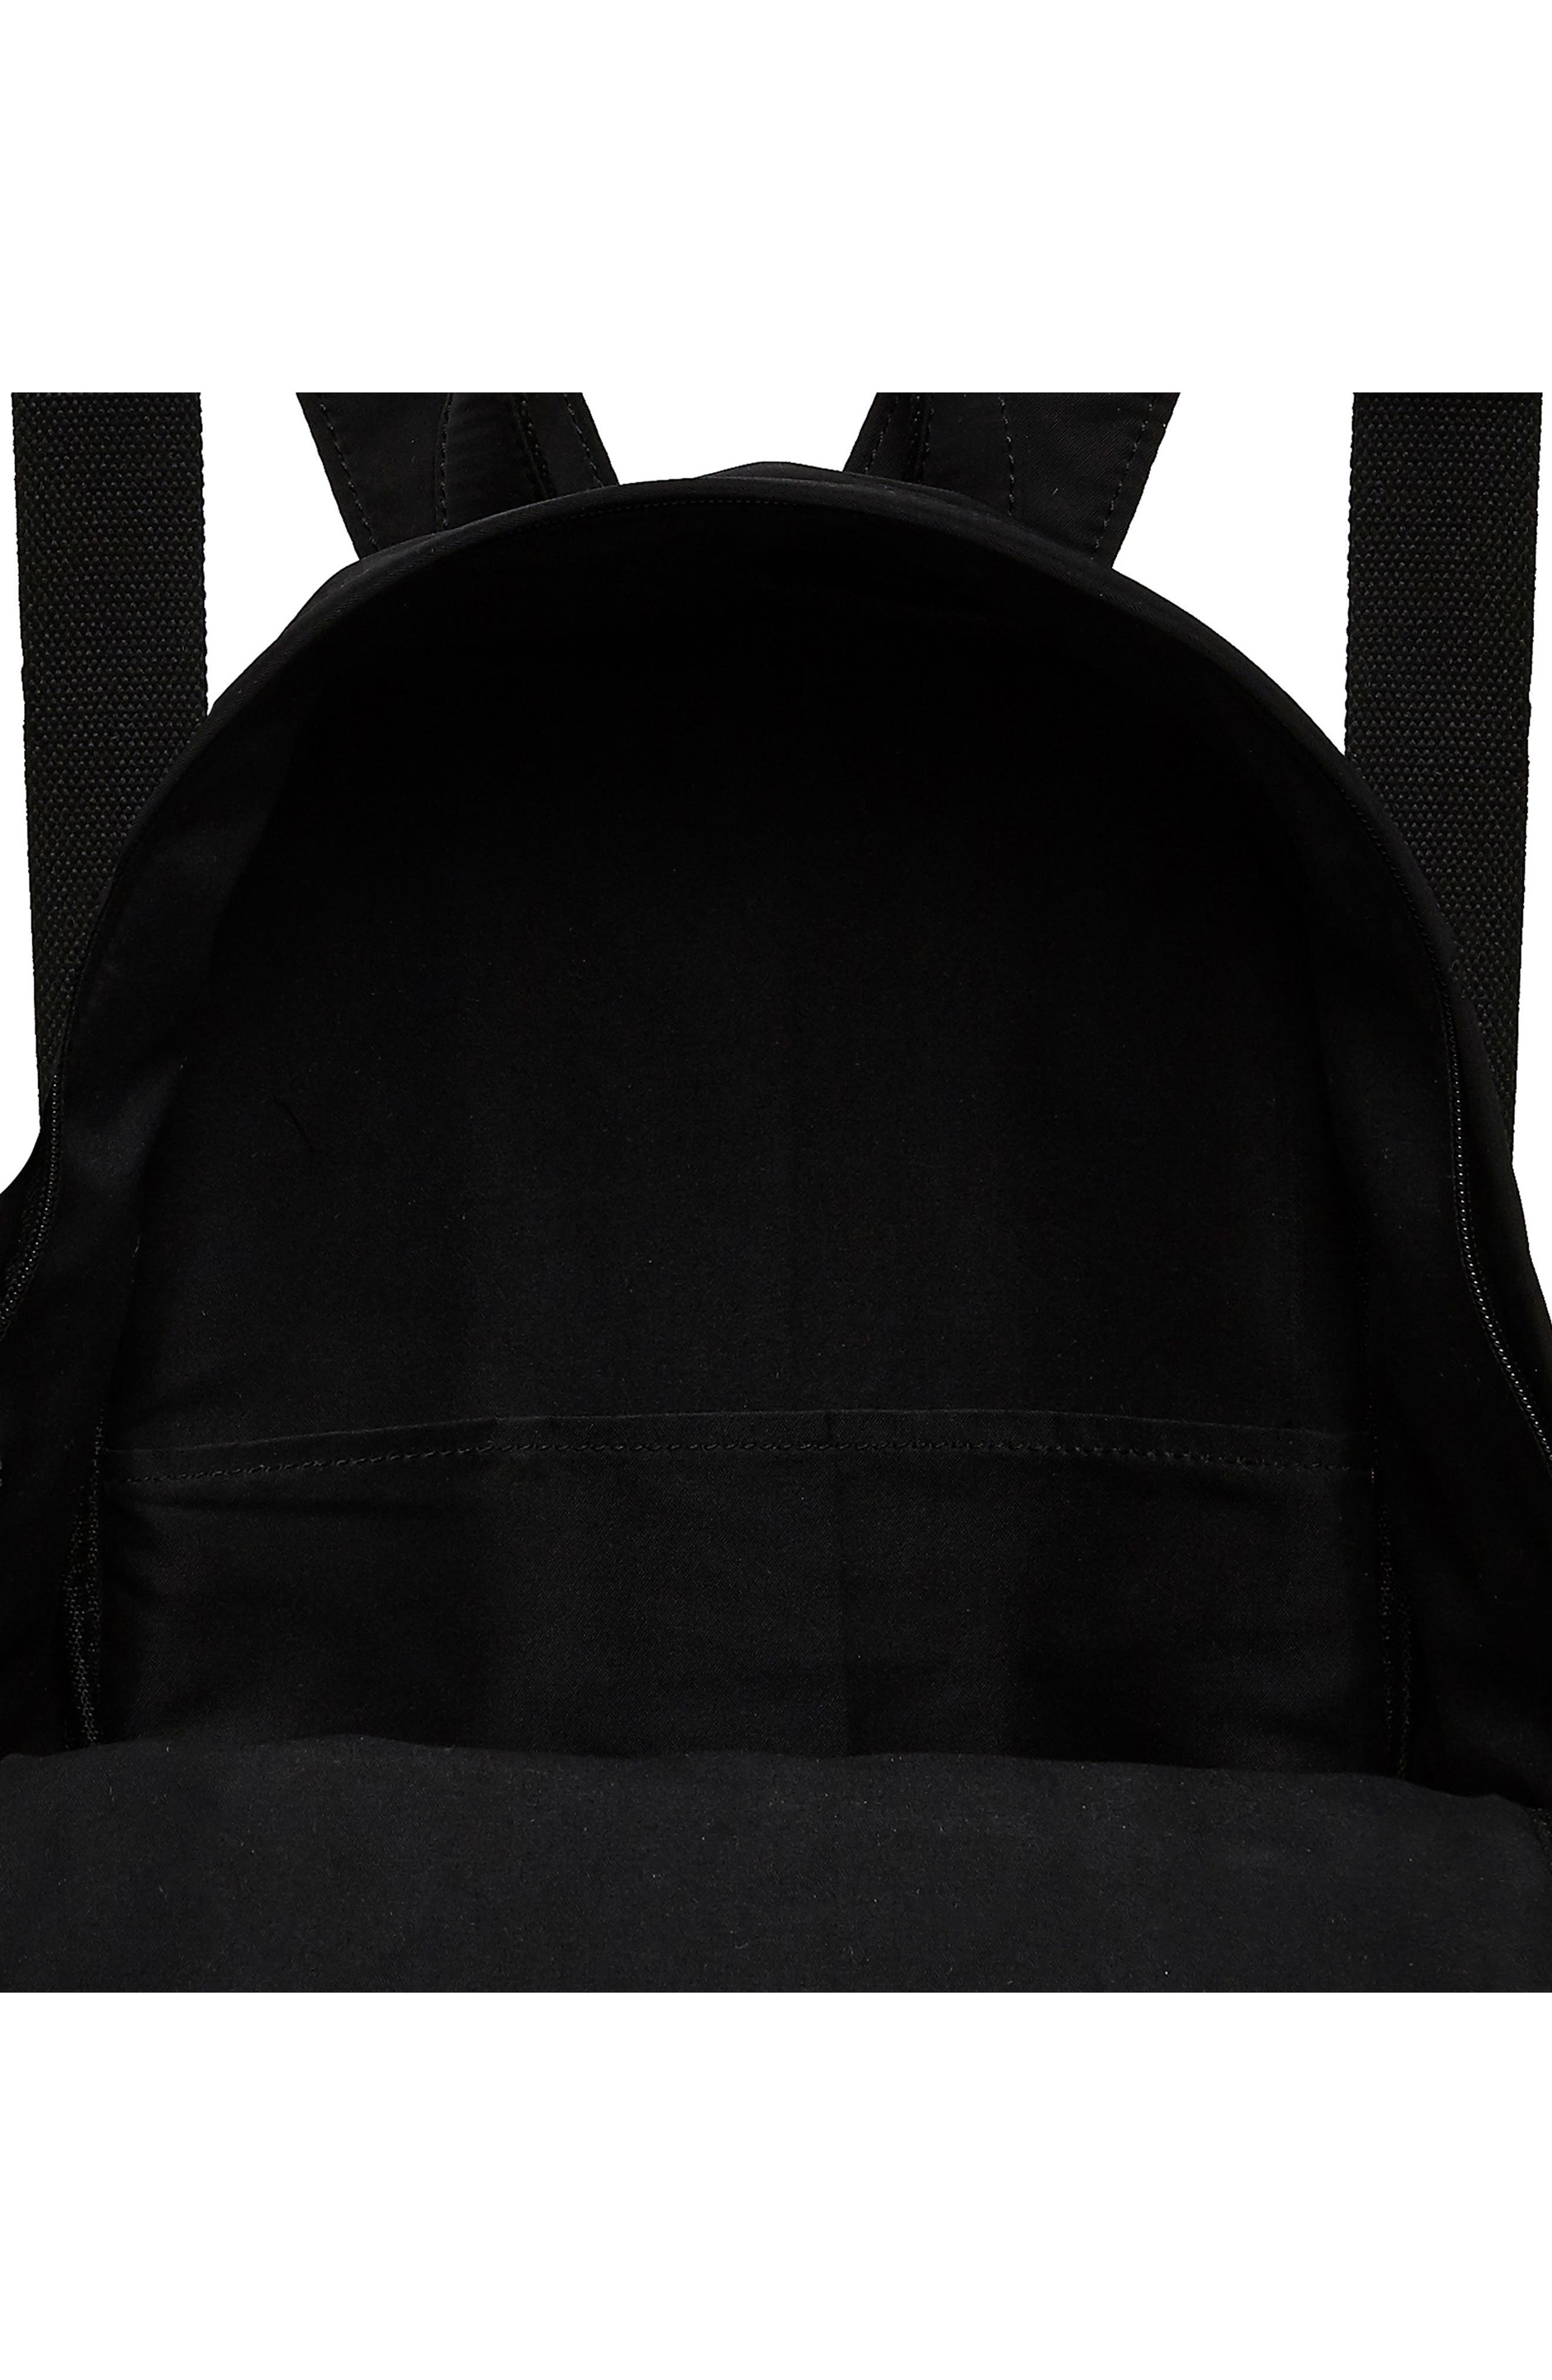 Own Beat Vegan Leather Backpack,                             Alternate thumbnail 3, color,                             001